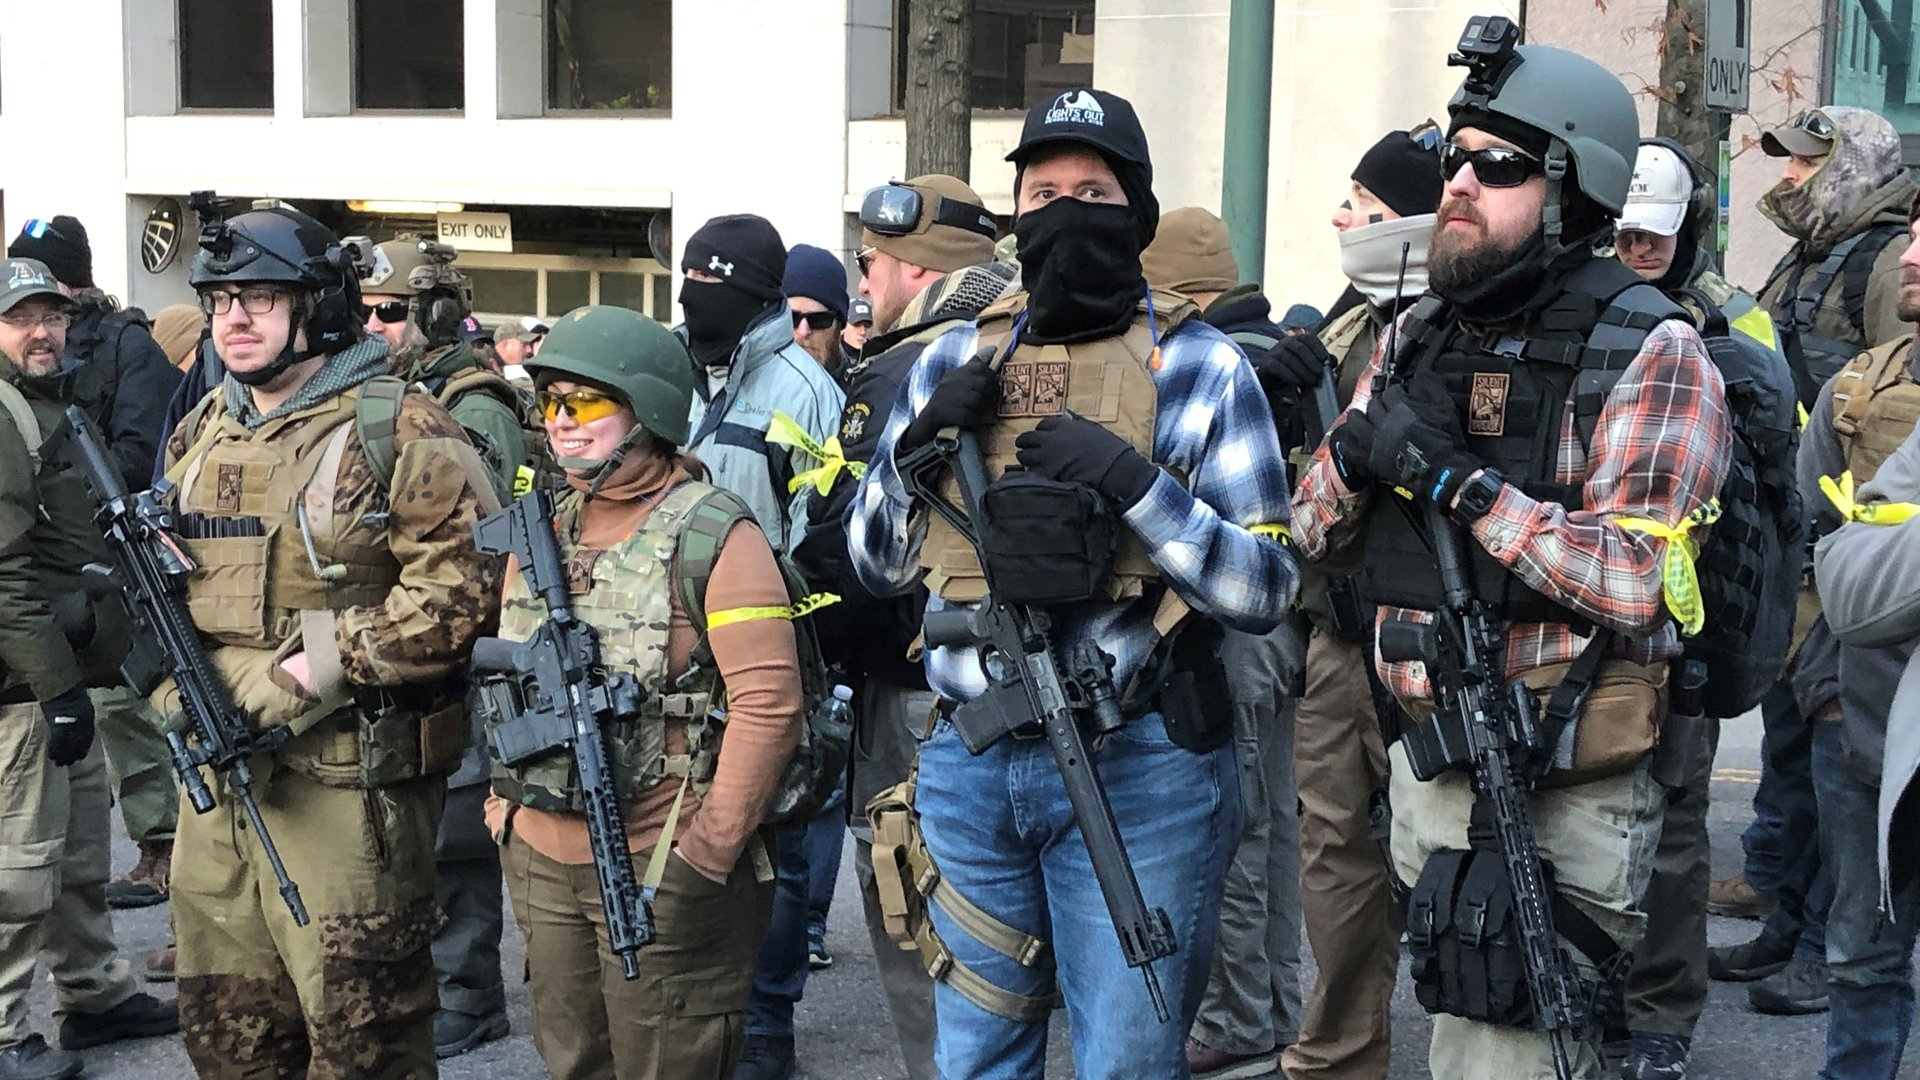 Photos of heavily armed people at the Lobby Day rally in Richmond, Virginia, on Jan. 20, 2020. These people are outside of the secured, weapons-ban area on the State Capitol grounds. (Credit: Sara Sidner/CNN)